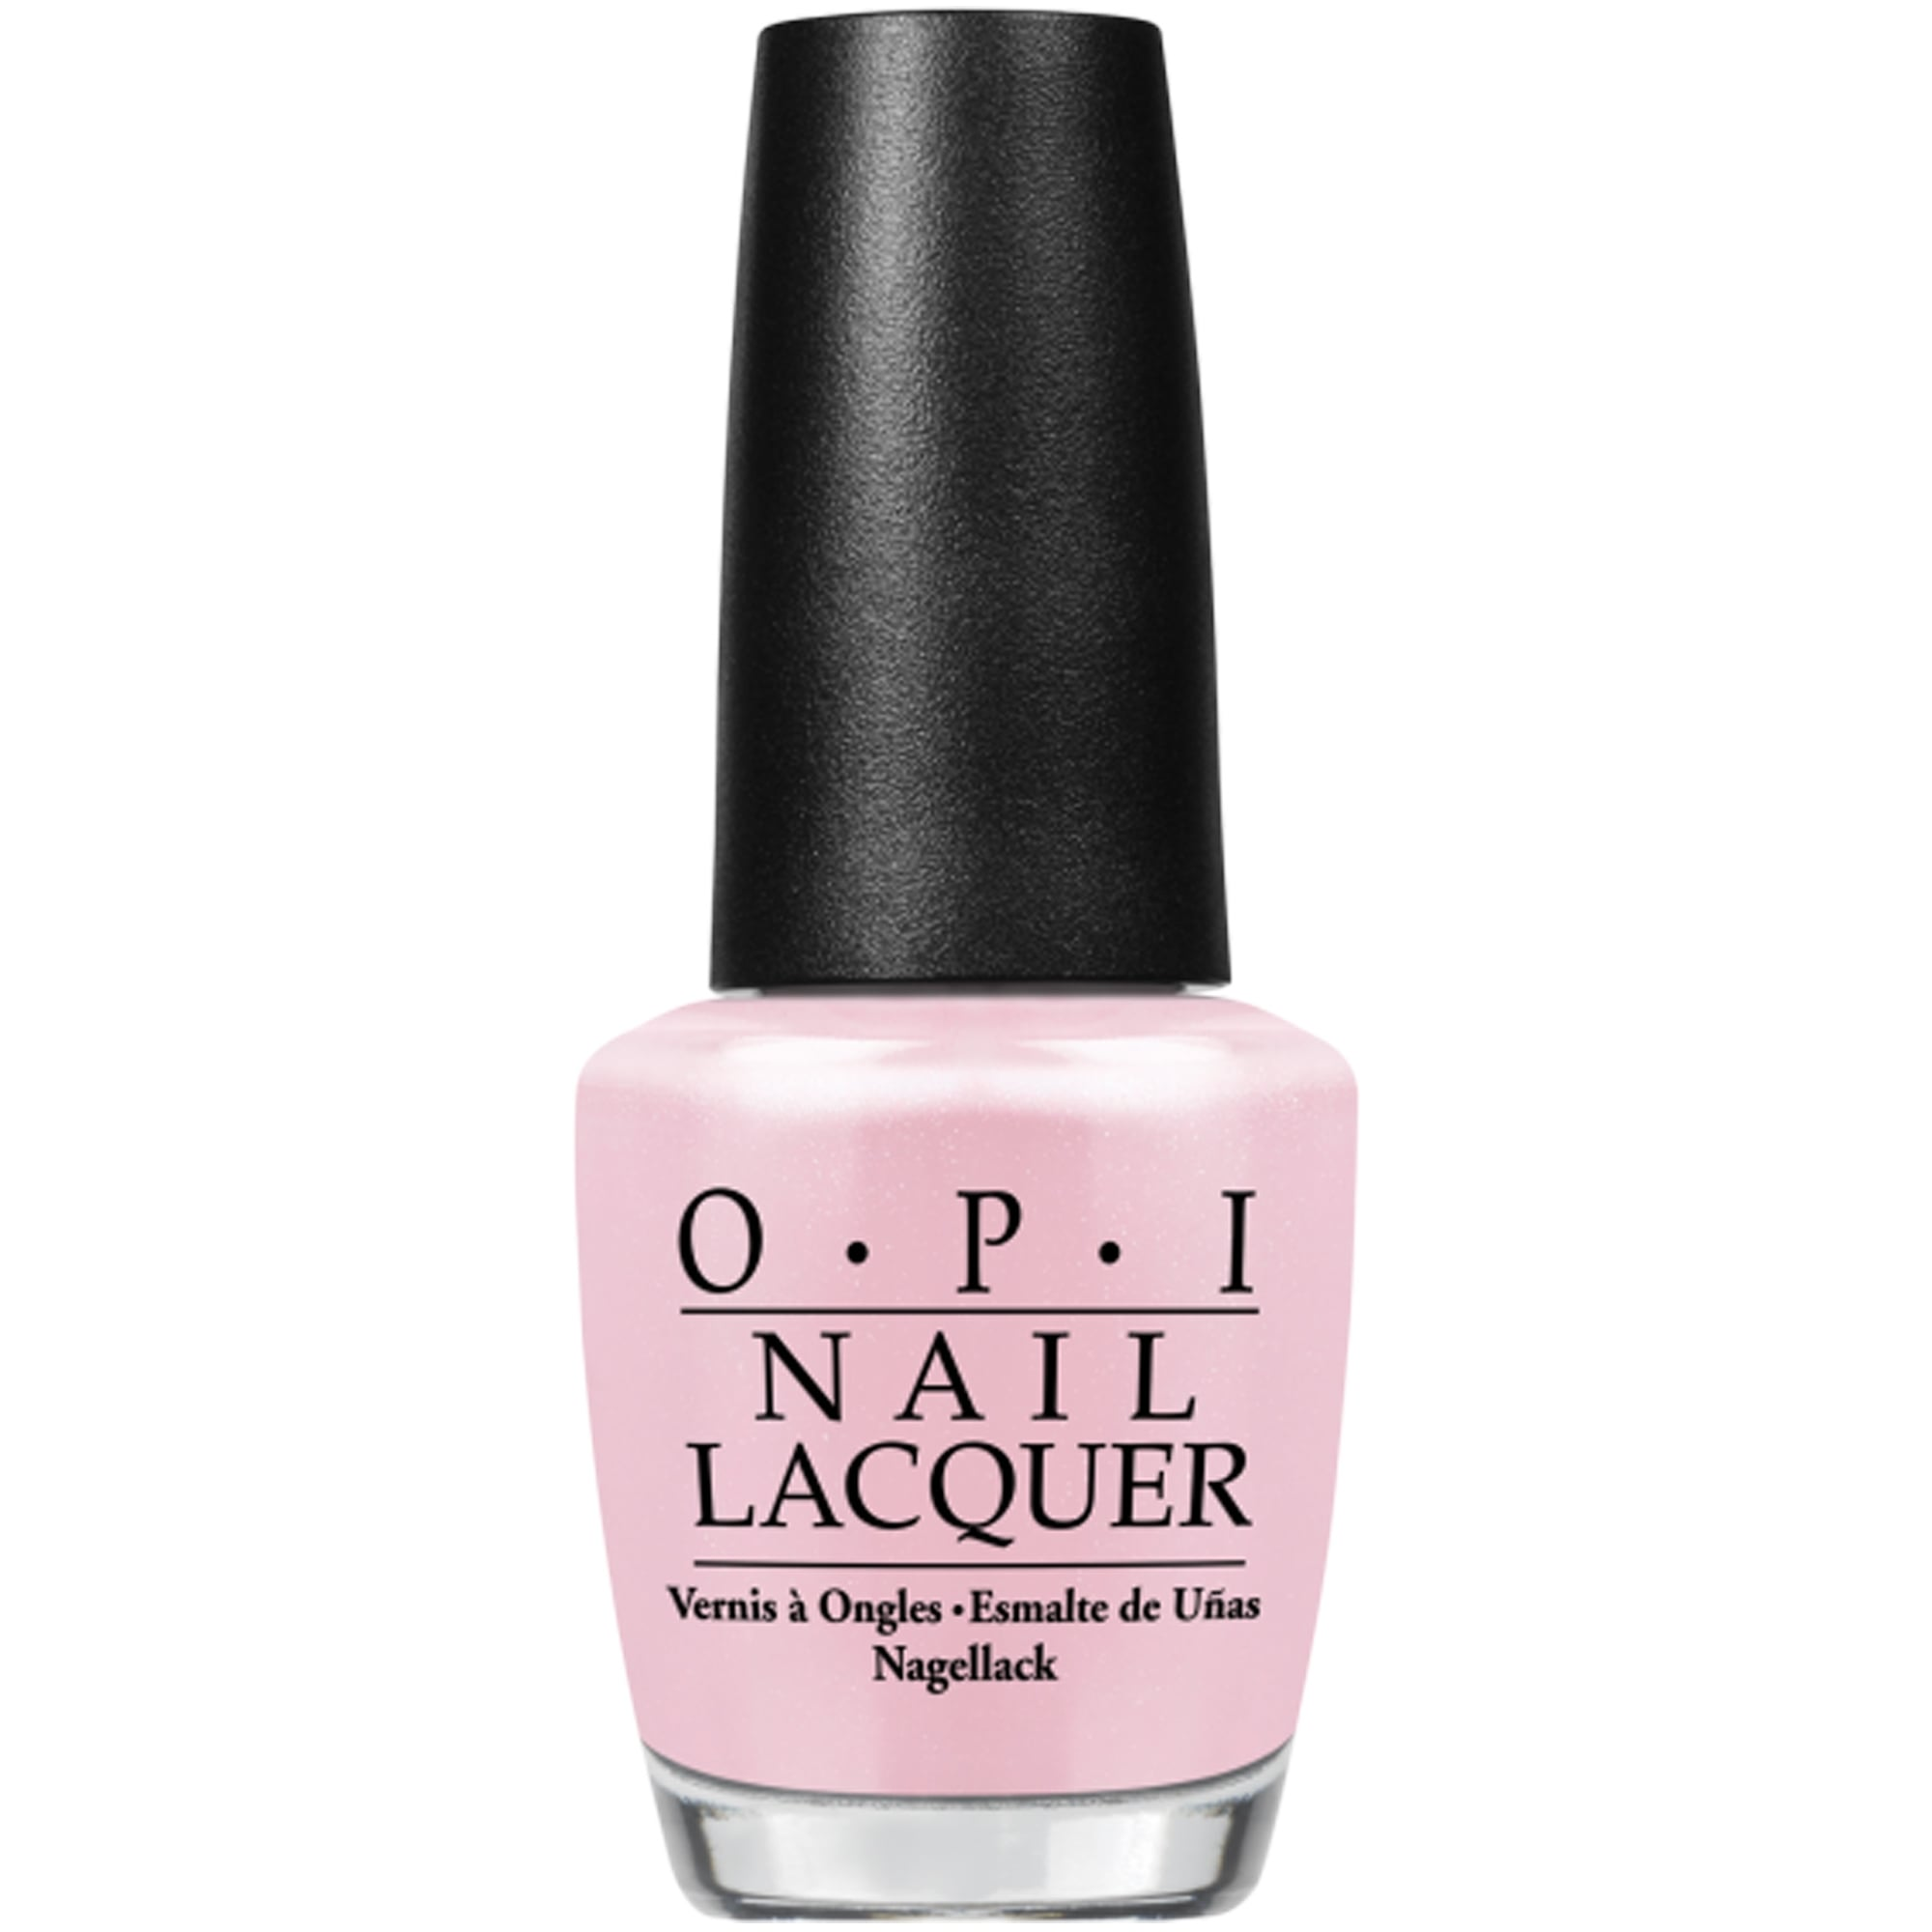 OPI New Orleans 2016 Nail Polish Collection - Let Me Bayou A Drink